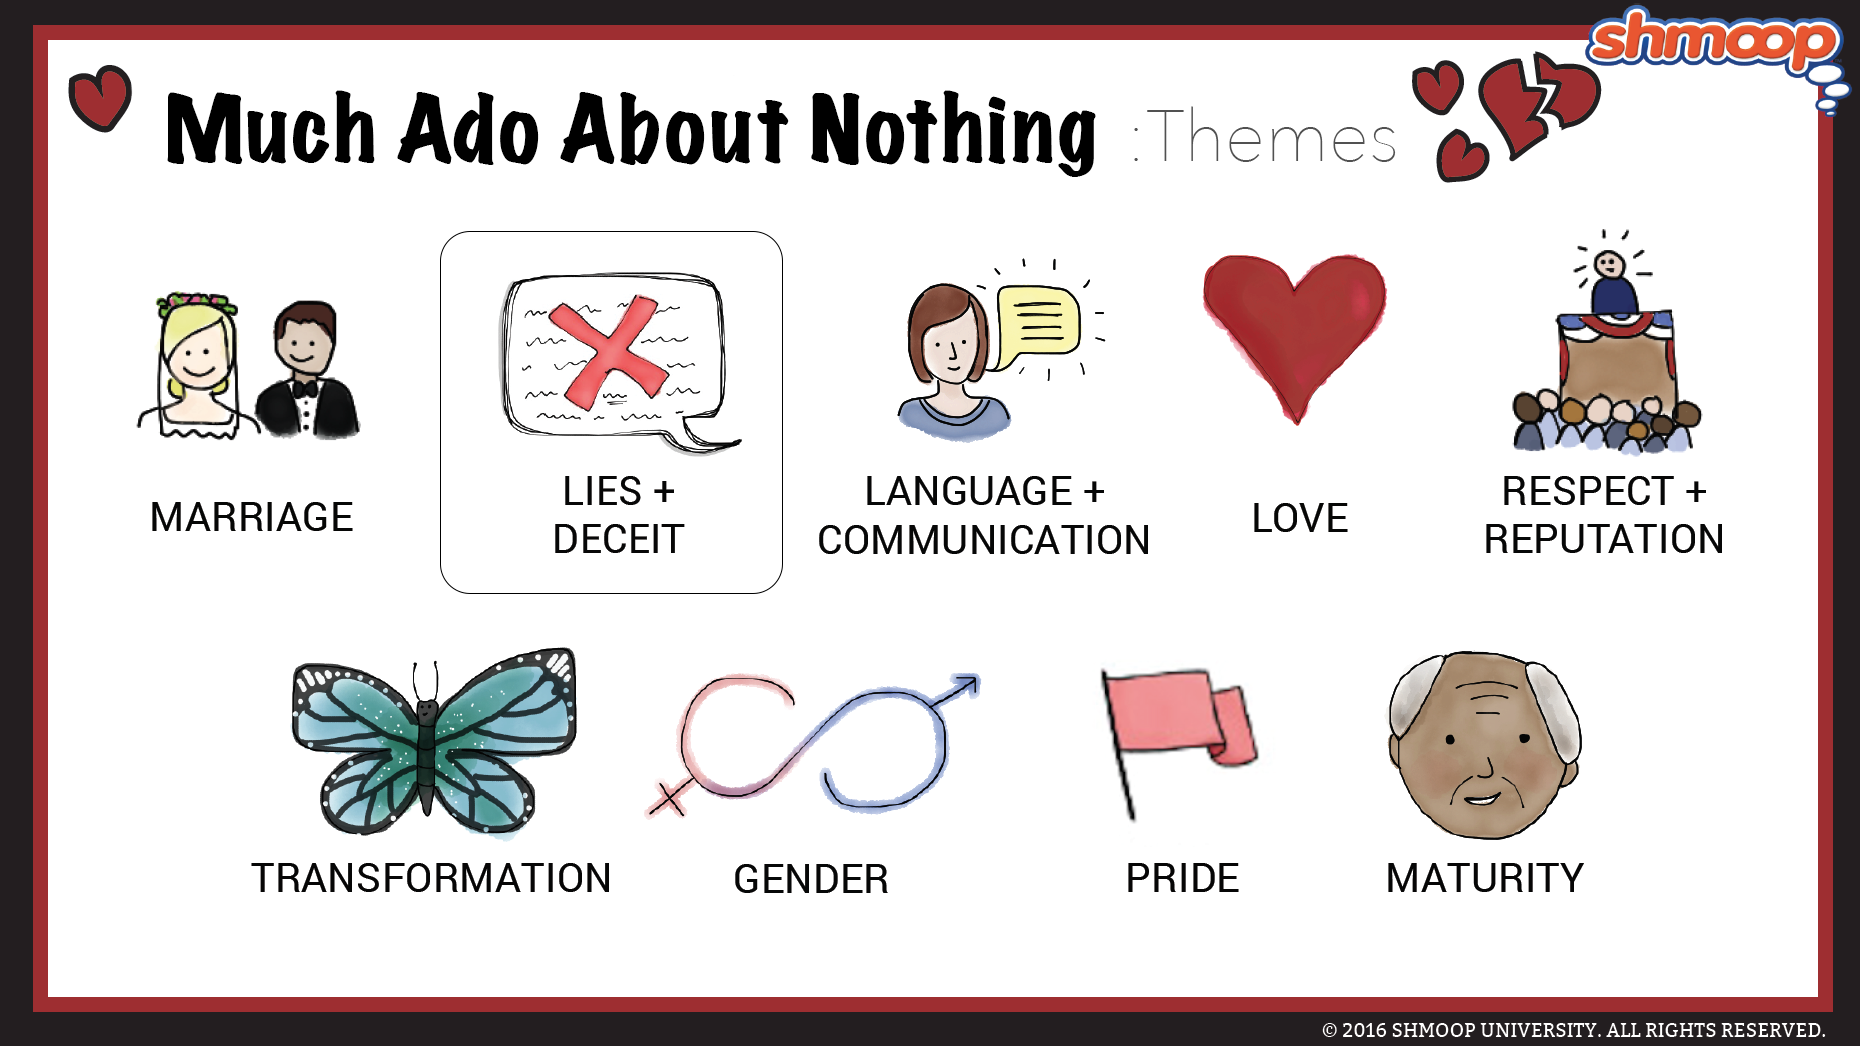 much ado about nothing theme of lies and deceit